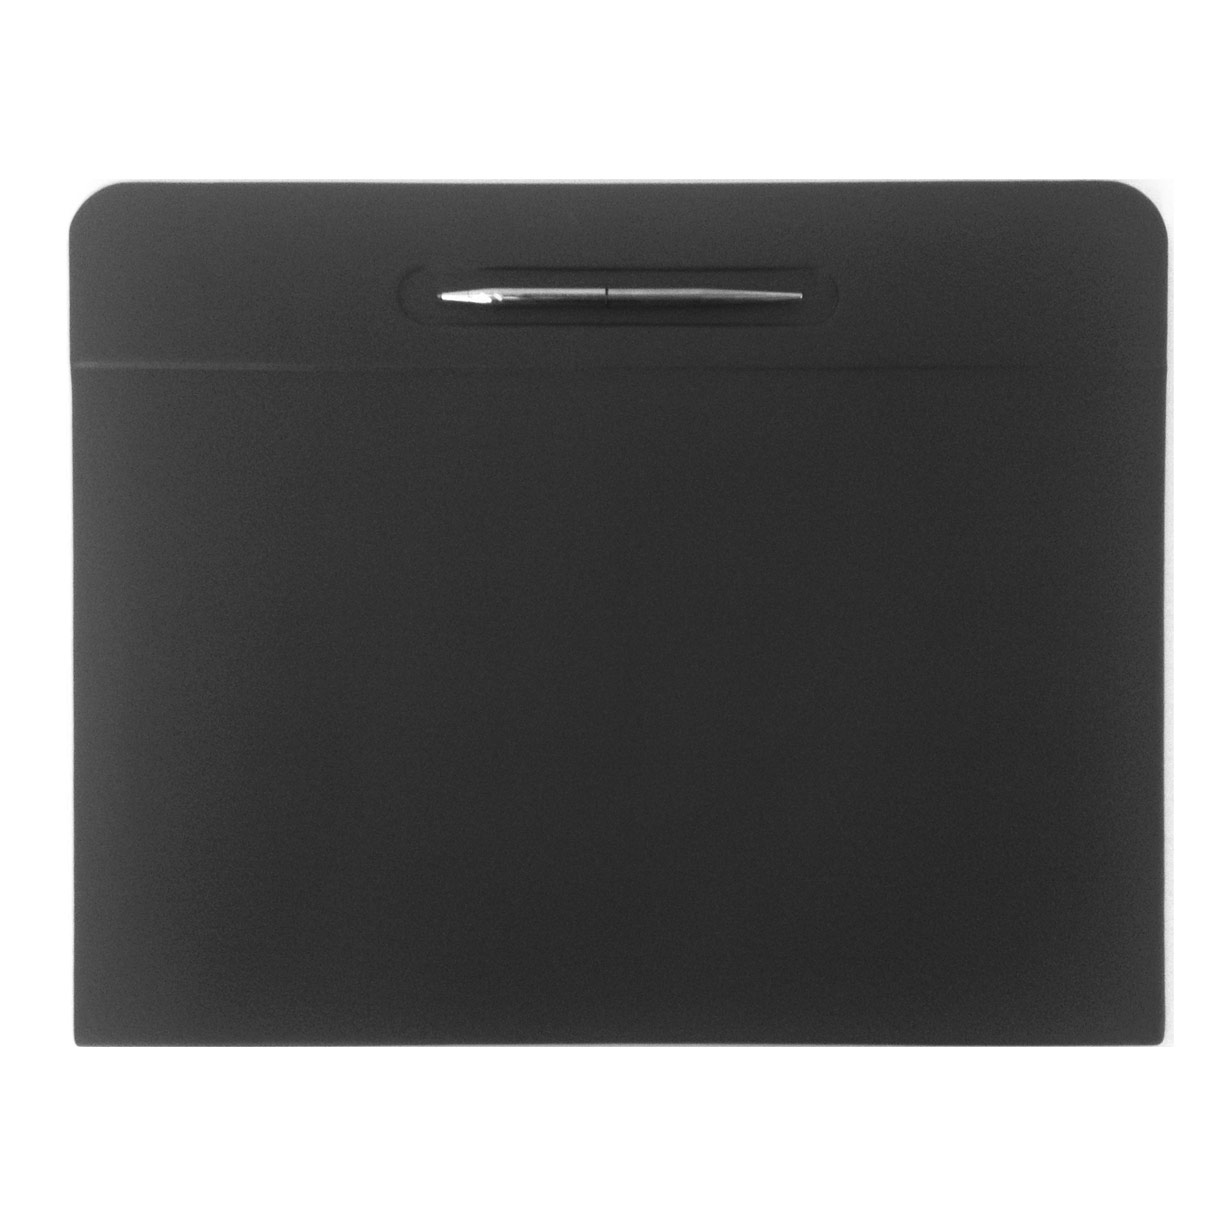 Pen Well Desk Pad